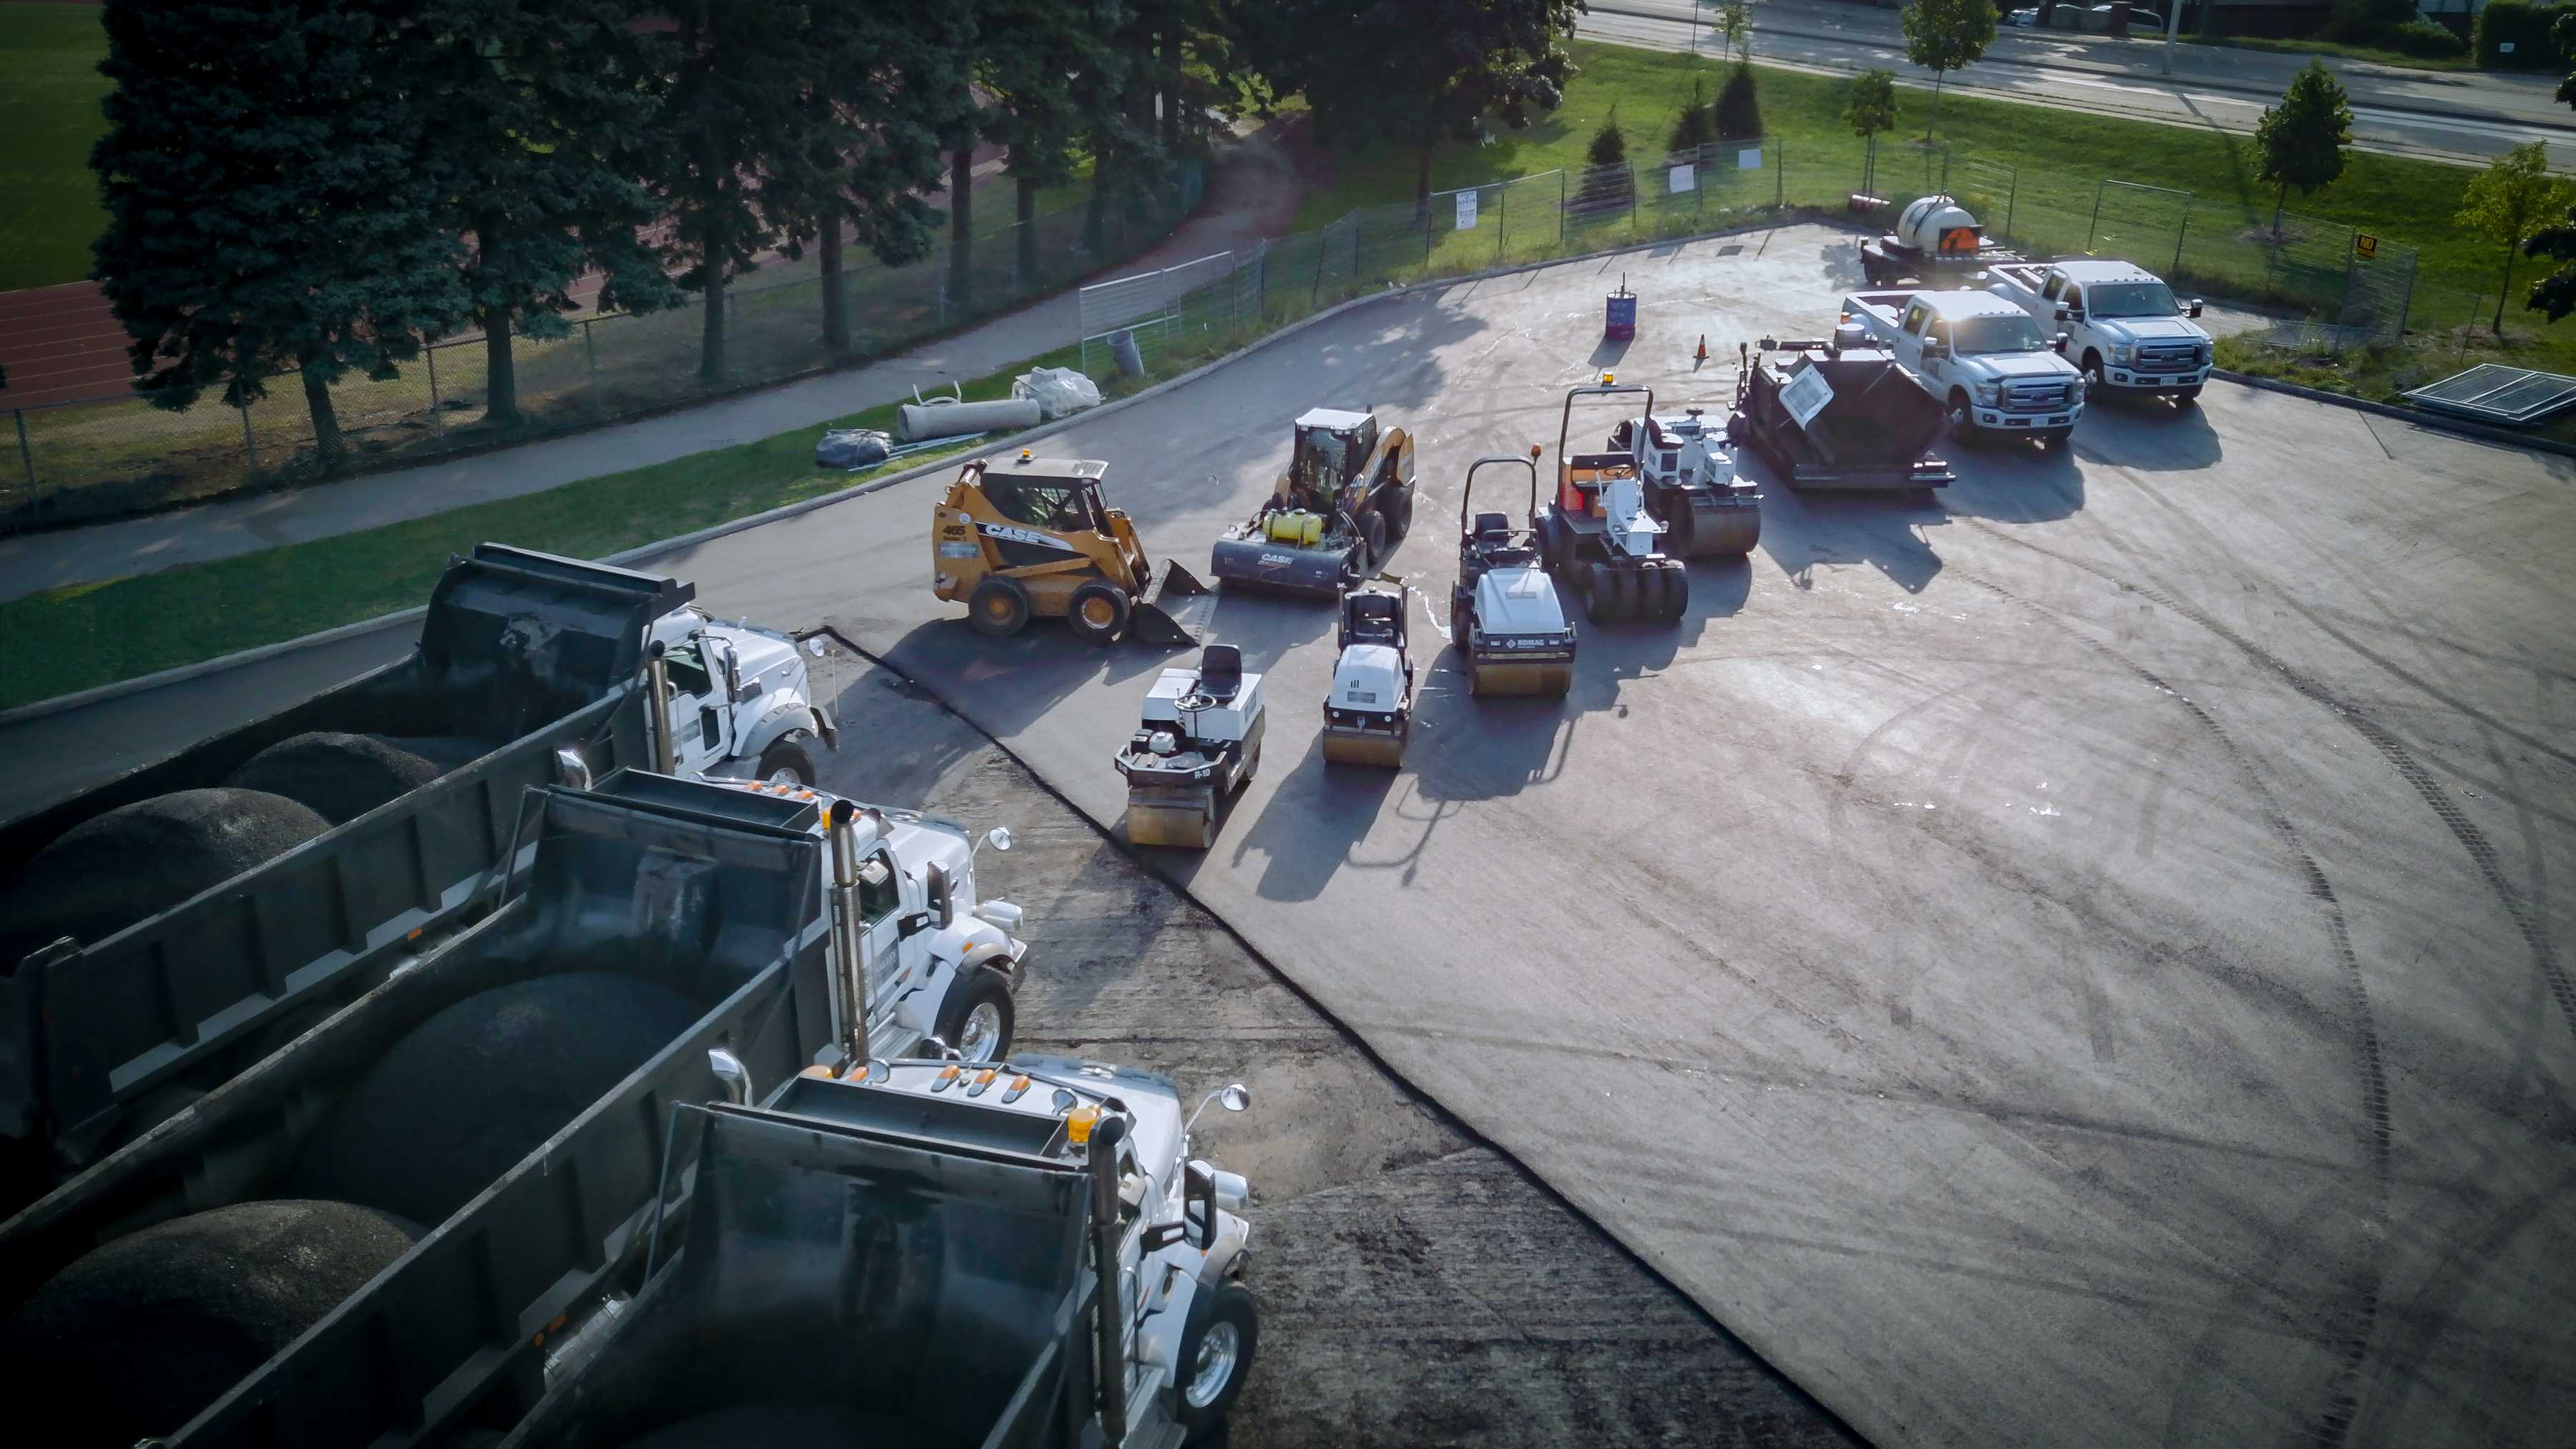 An aerial view of dump trucks and other paving equipment parked in a parking lot.